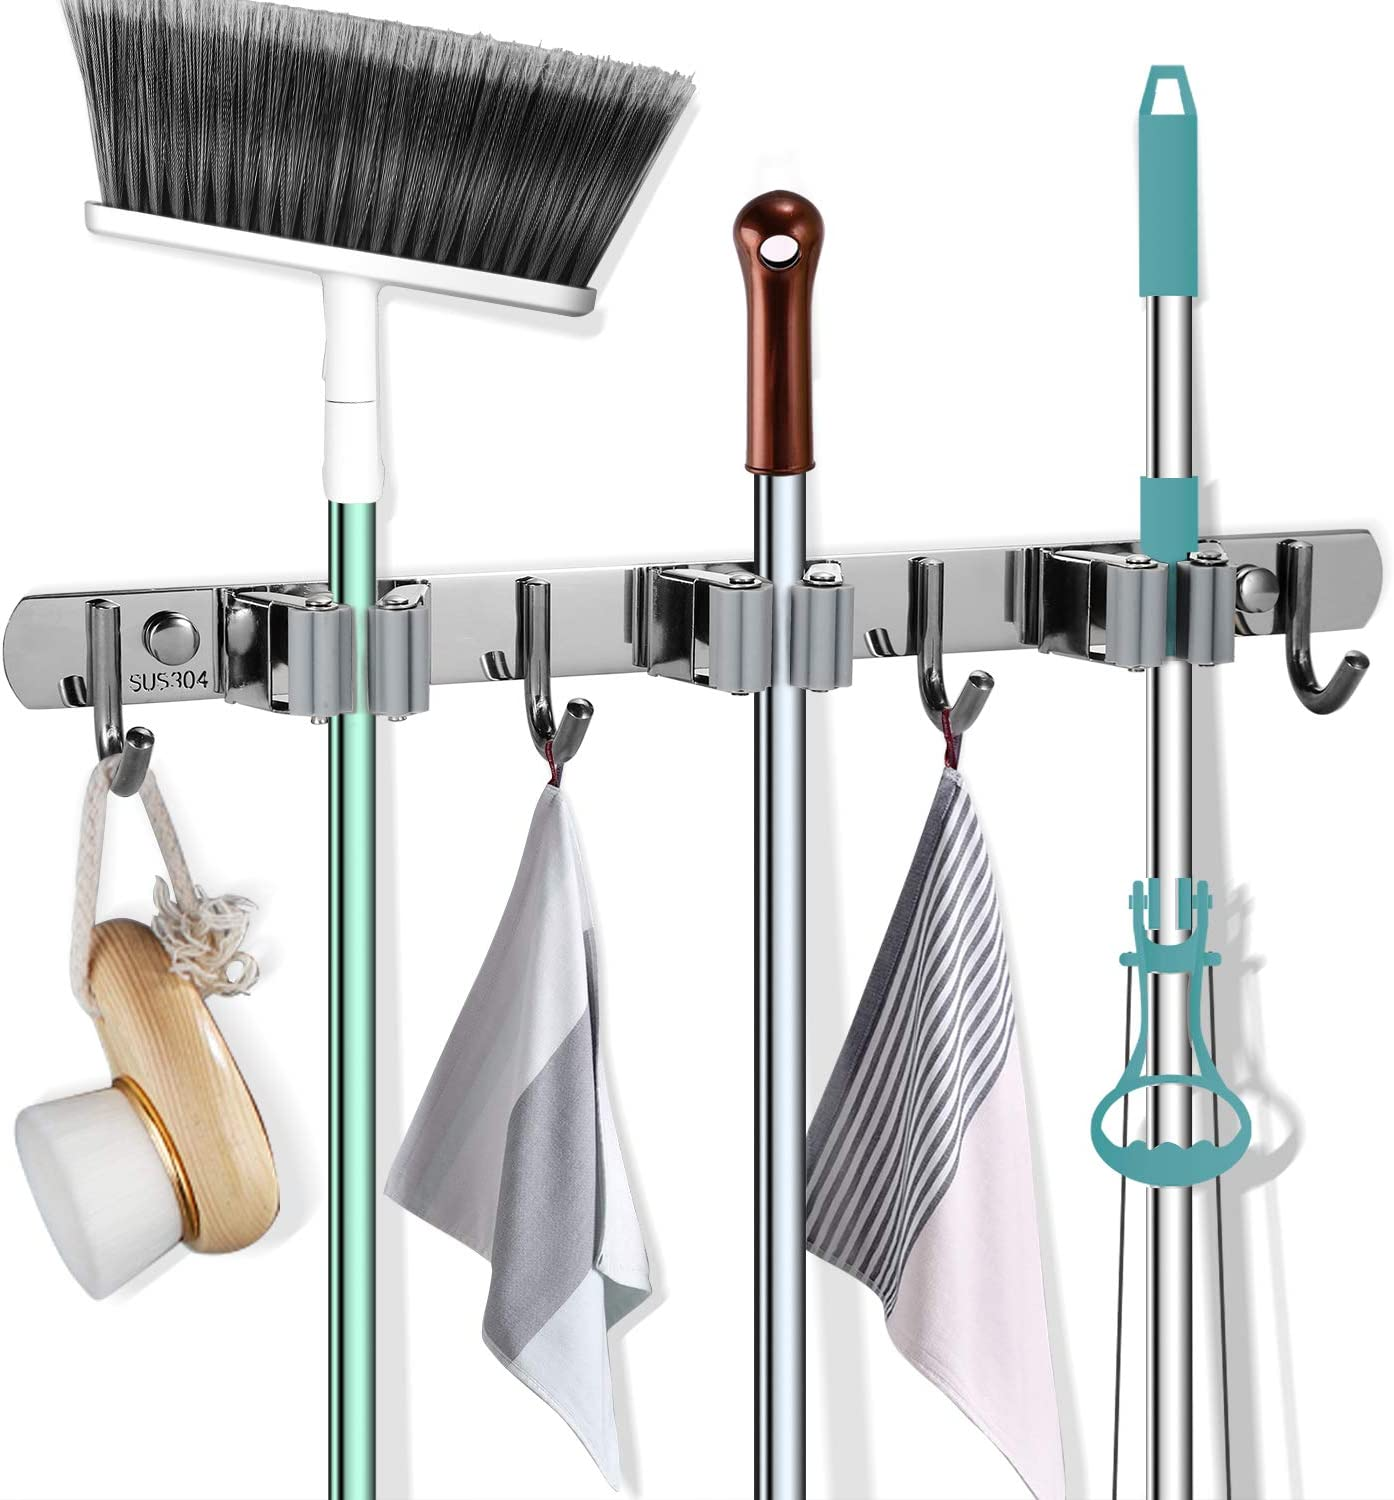 SellSense Mop and Broom Holder Wall Mount Kitchen Garage Garden Tool Organizer 16 Fastening Locations The Best Heavy Duty Storage Organizer.